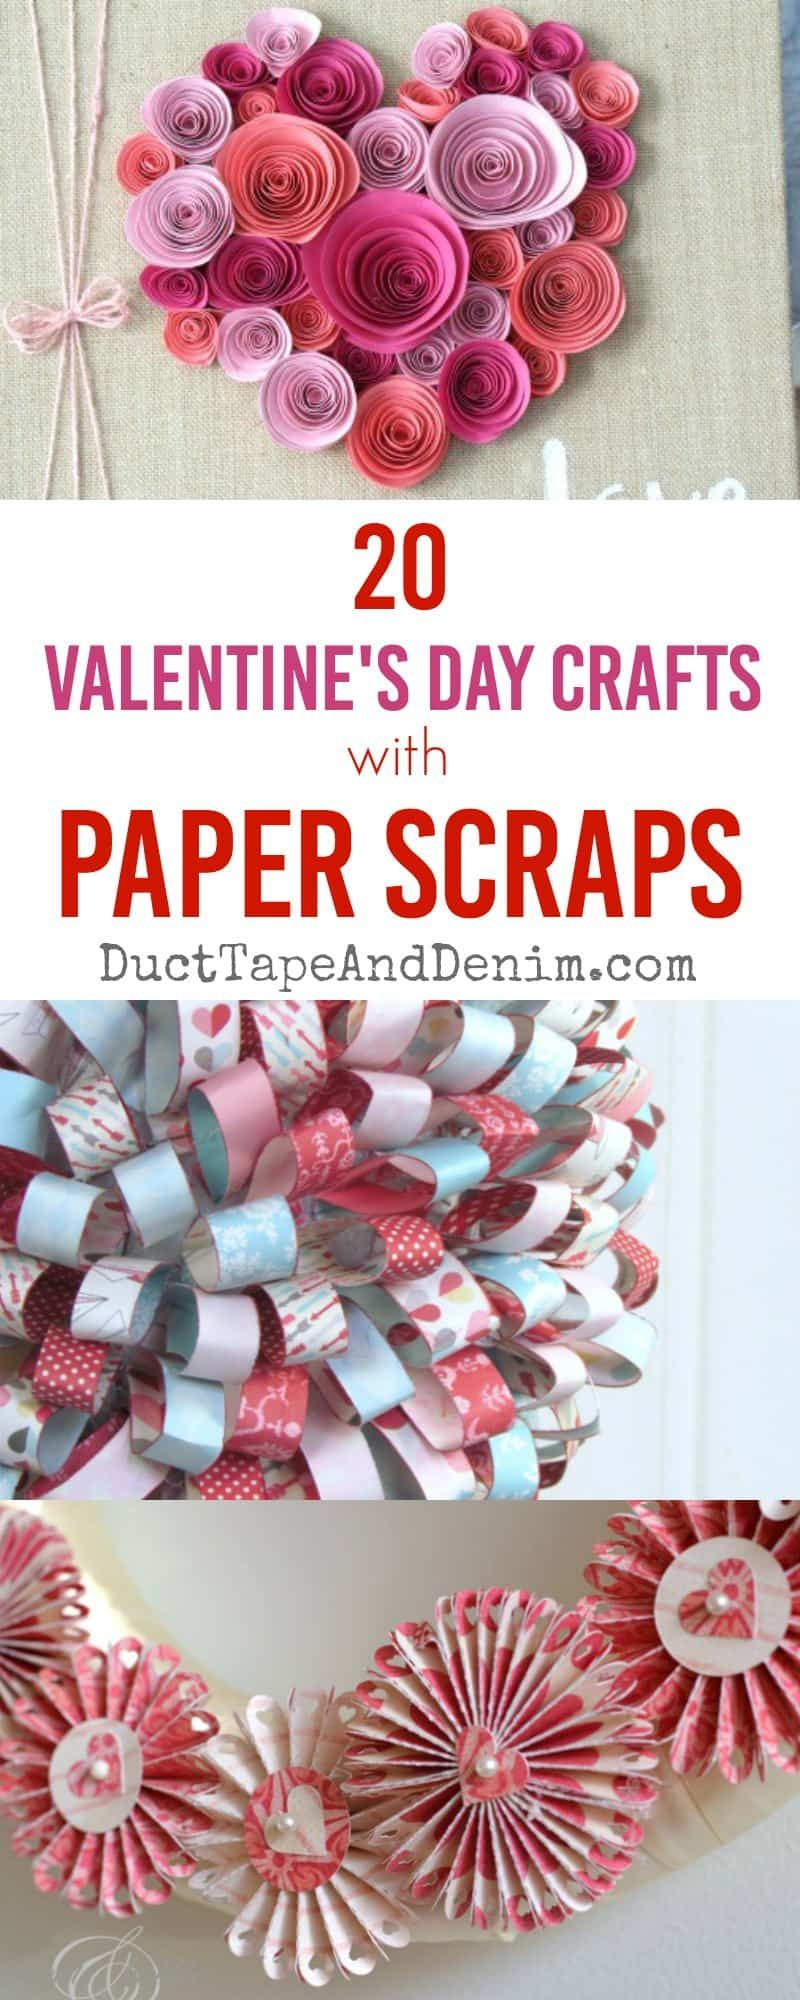 20 Valentine's Day crafts with paper scraps. Get these and lots more Valentine's Day craft ideas on DuctTapeAndDenim.com #ducttapeanddenim #paperscraps #papercrafting #valentinesdaycraftideas #craftideas #papercraftideas #valentinedaycrafts #valentinesdaydecorations